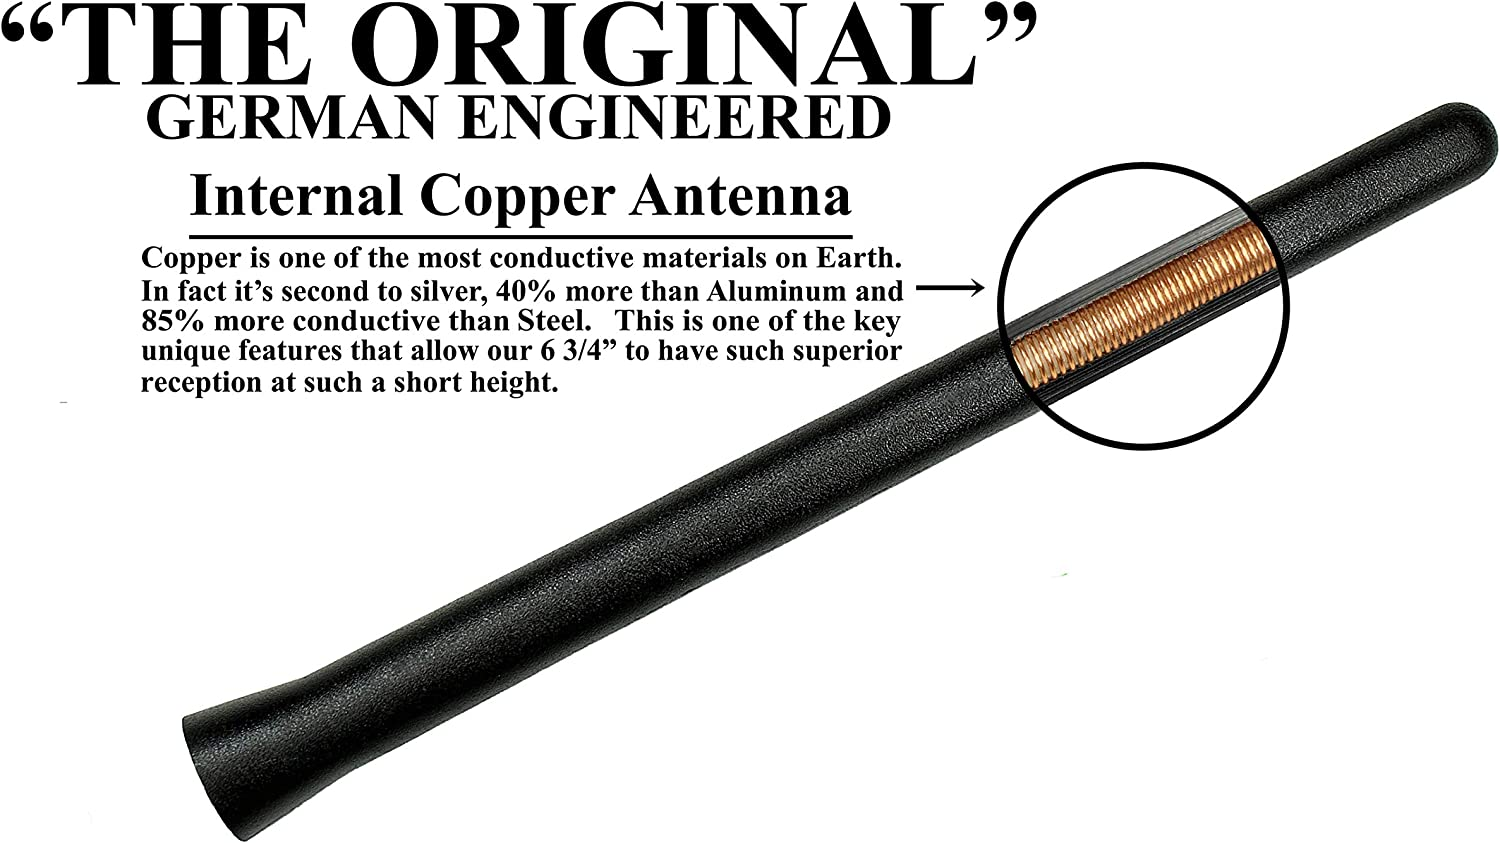 - Short Rubber Antenna The Original 6 3//4 INCH is Compatible with Chevrolet Tahoe Reception Guaranteed 1992-2005 Internal Copper Coil German Engineered AntennaMastsRus